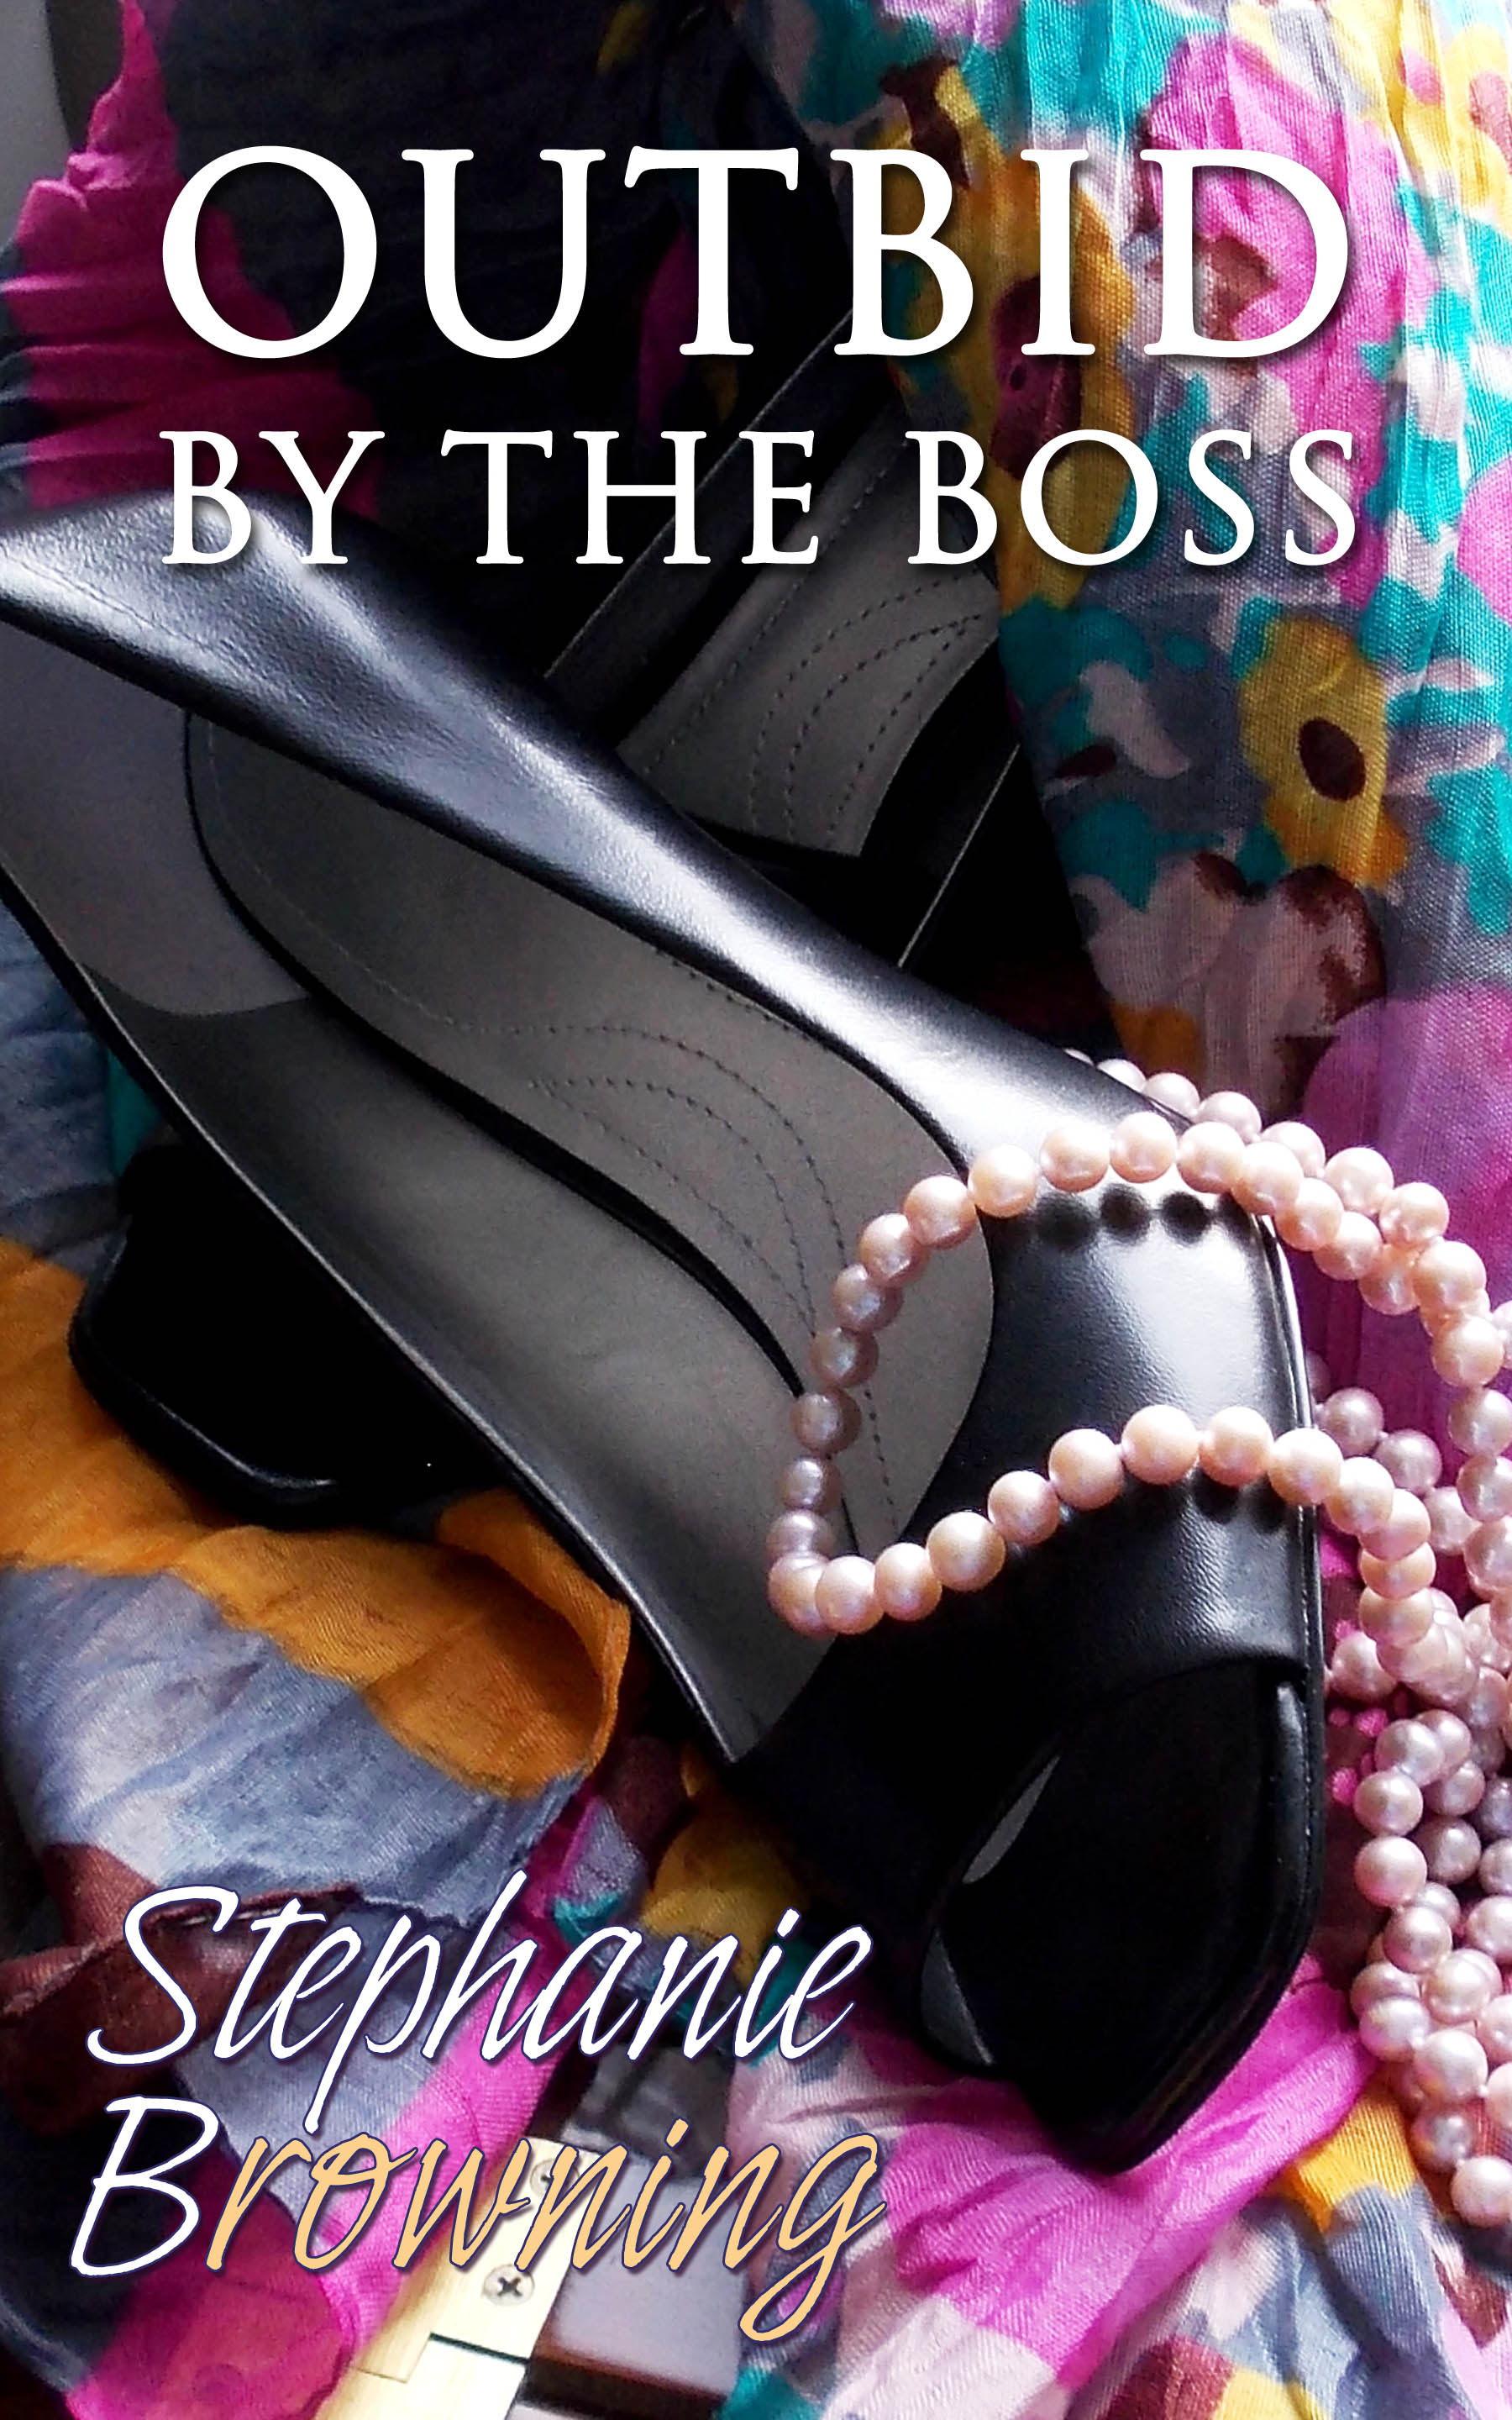 Outbid by the Boss  by  Stephanie Browning   stephaniebrowningromance.com  Available in  paperback  and  Kindle